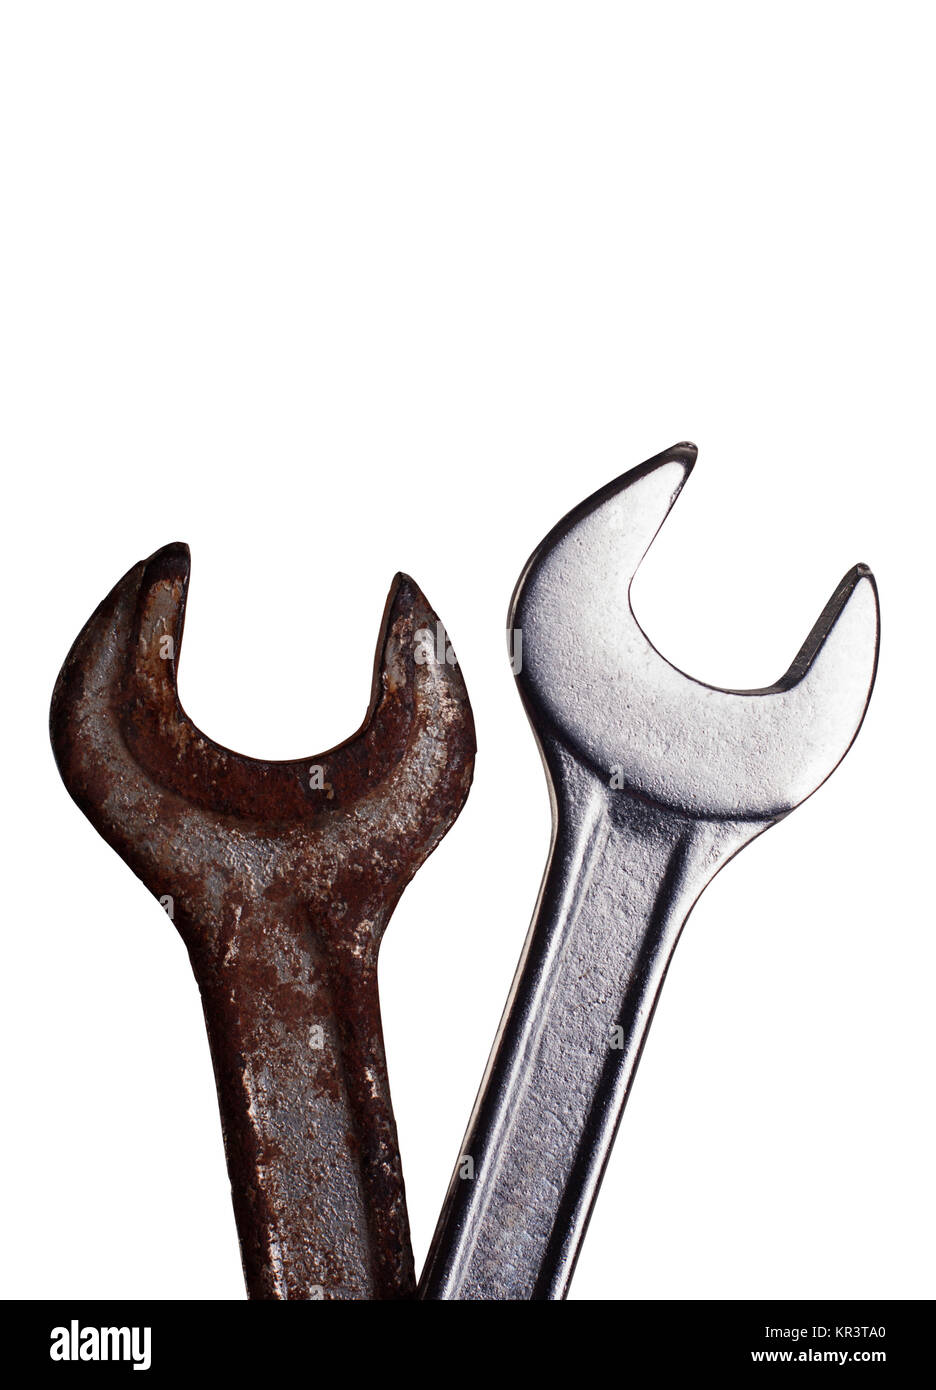 Pair of wrenches - Stock Image